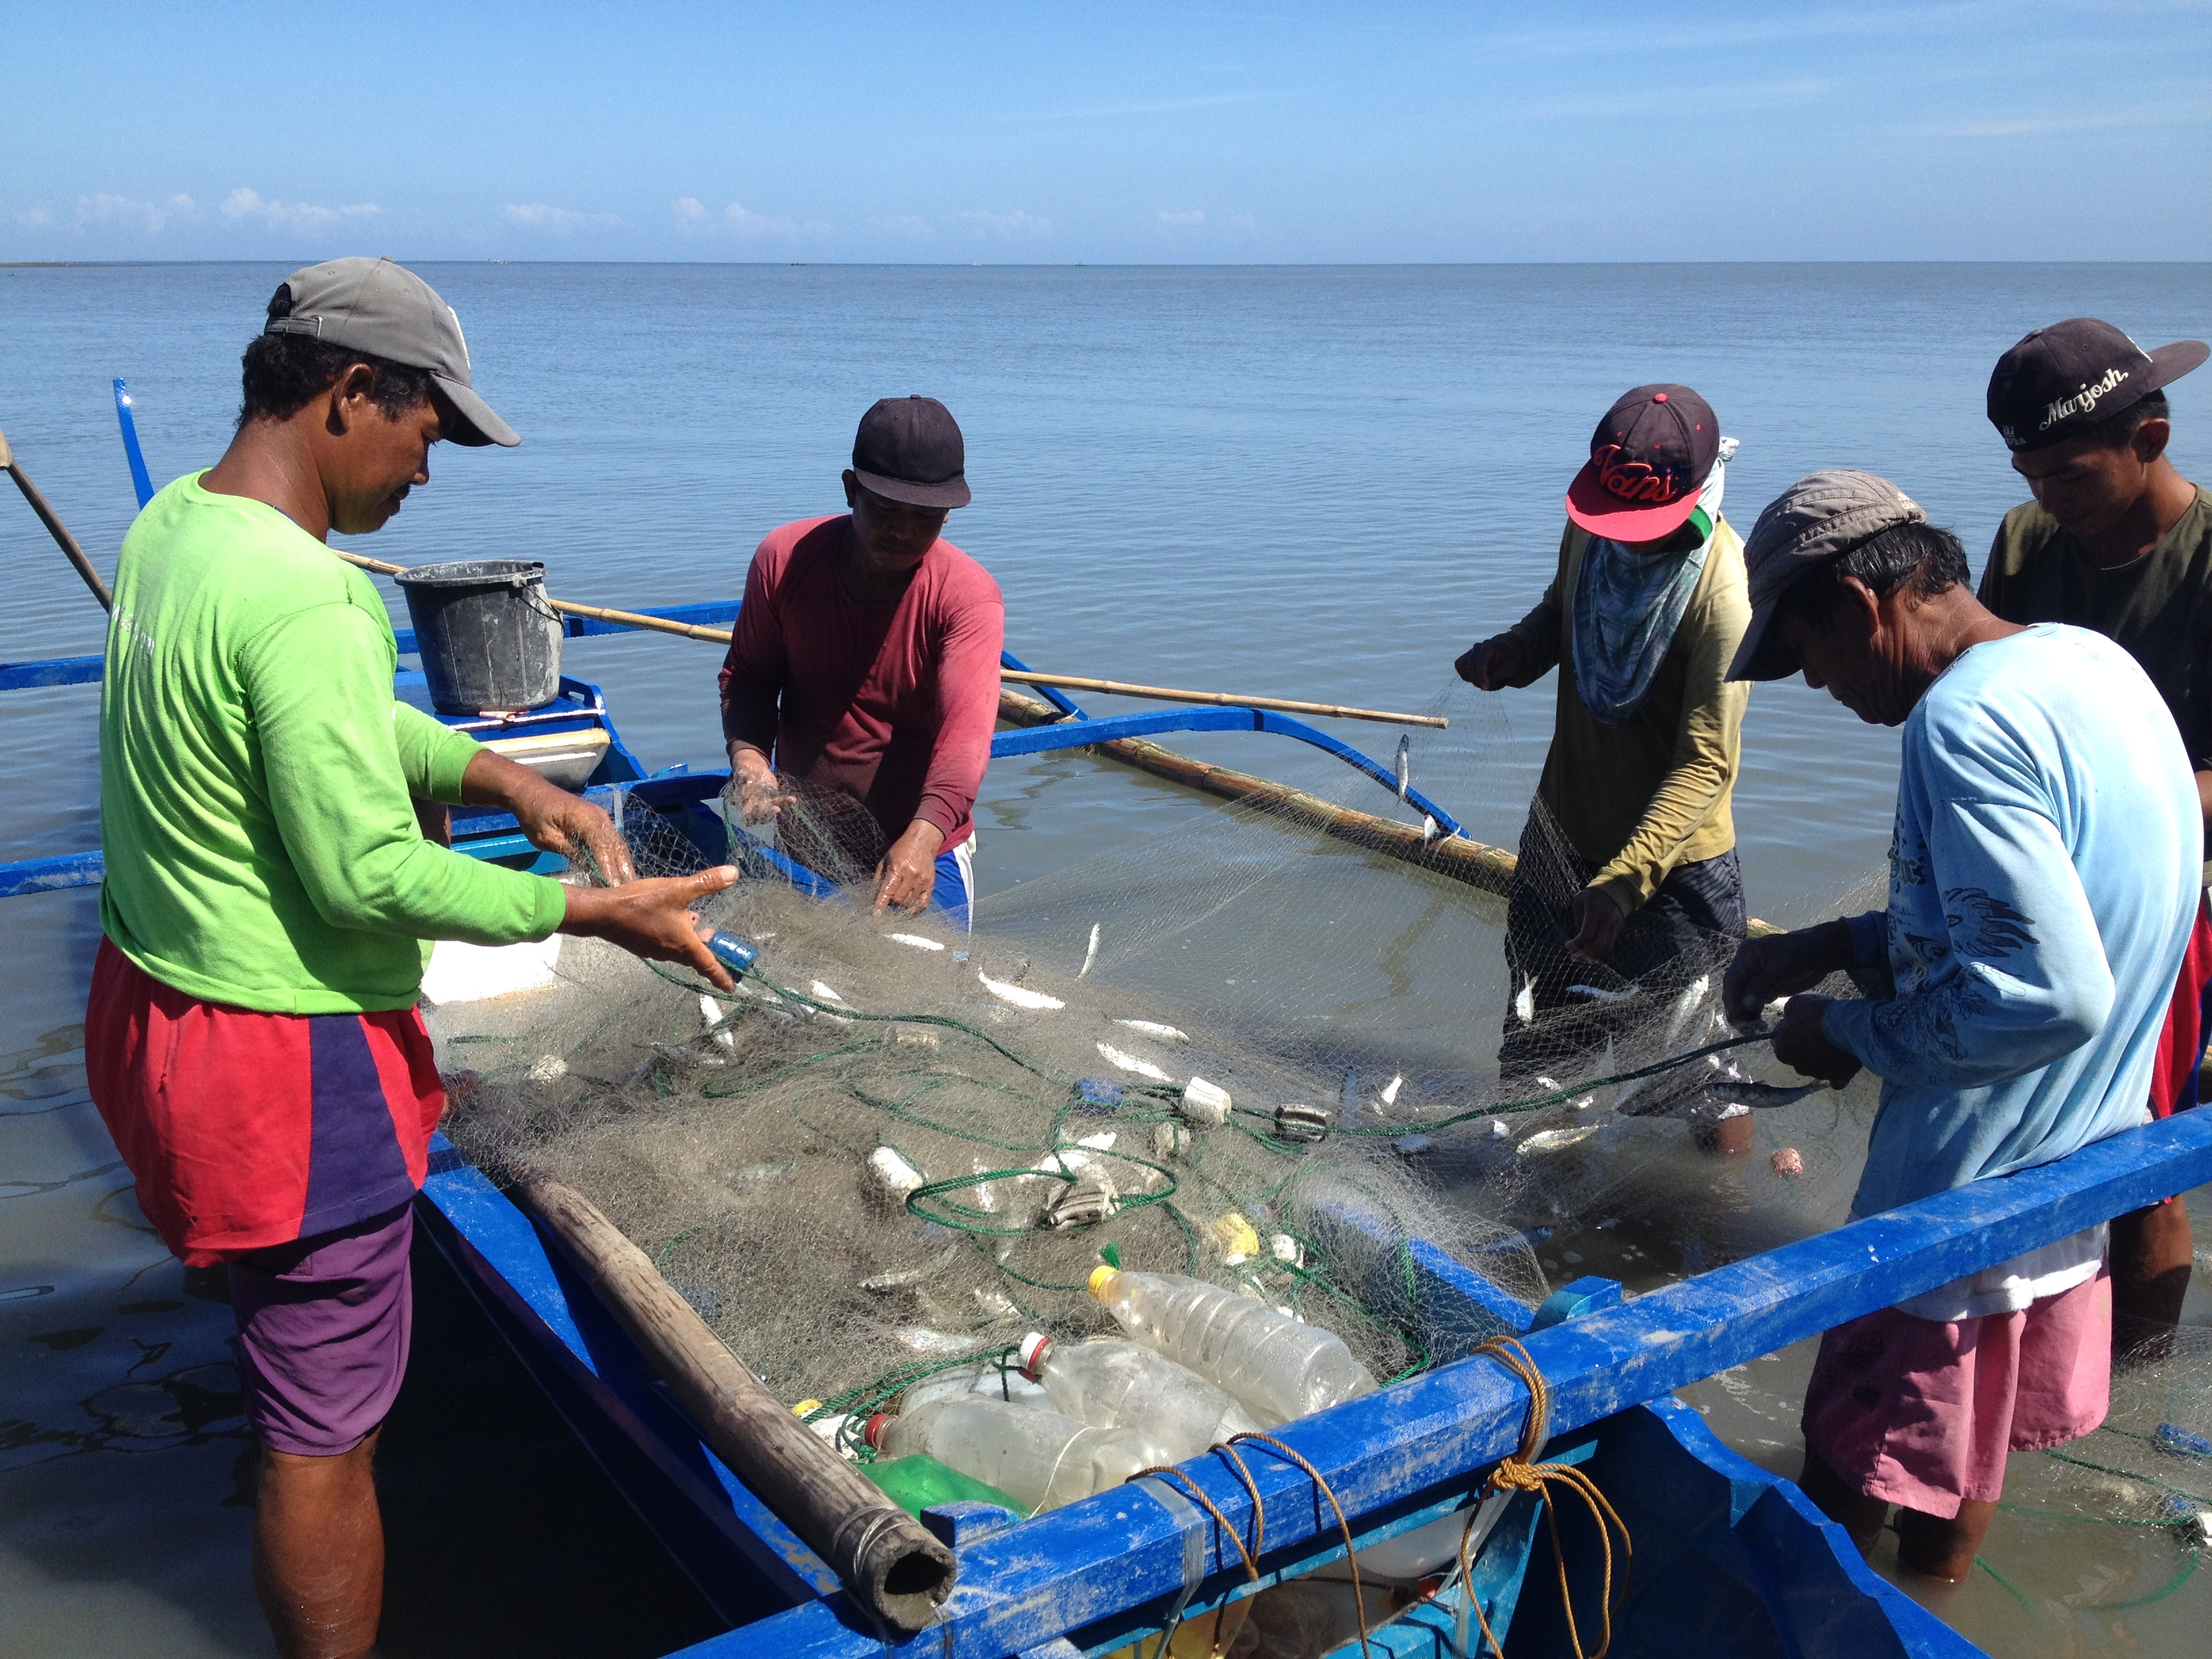 USAID's Fish Right Program, Resonance and its project partners are collaborating to leverage the Philippines' growing demand for sustainable seafood and e-commerce.